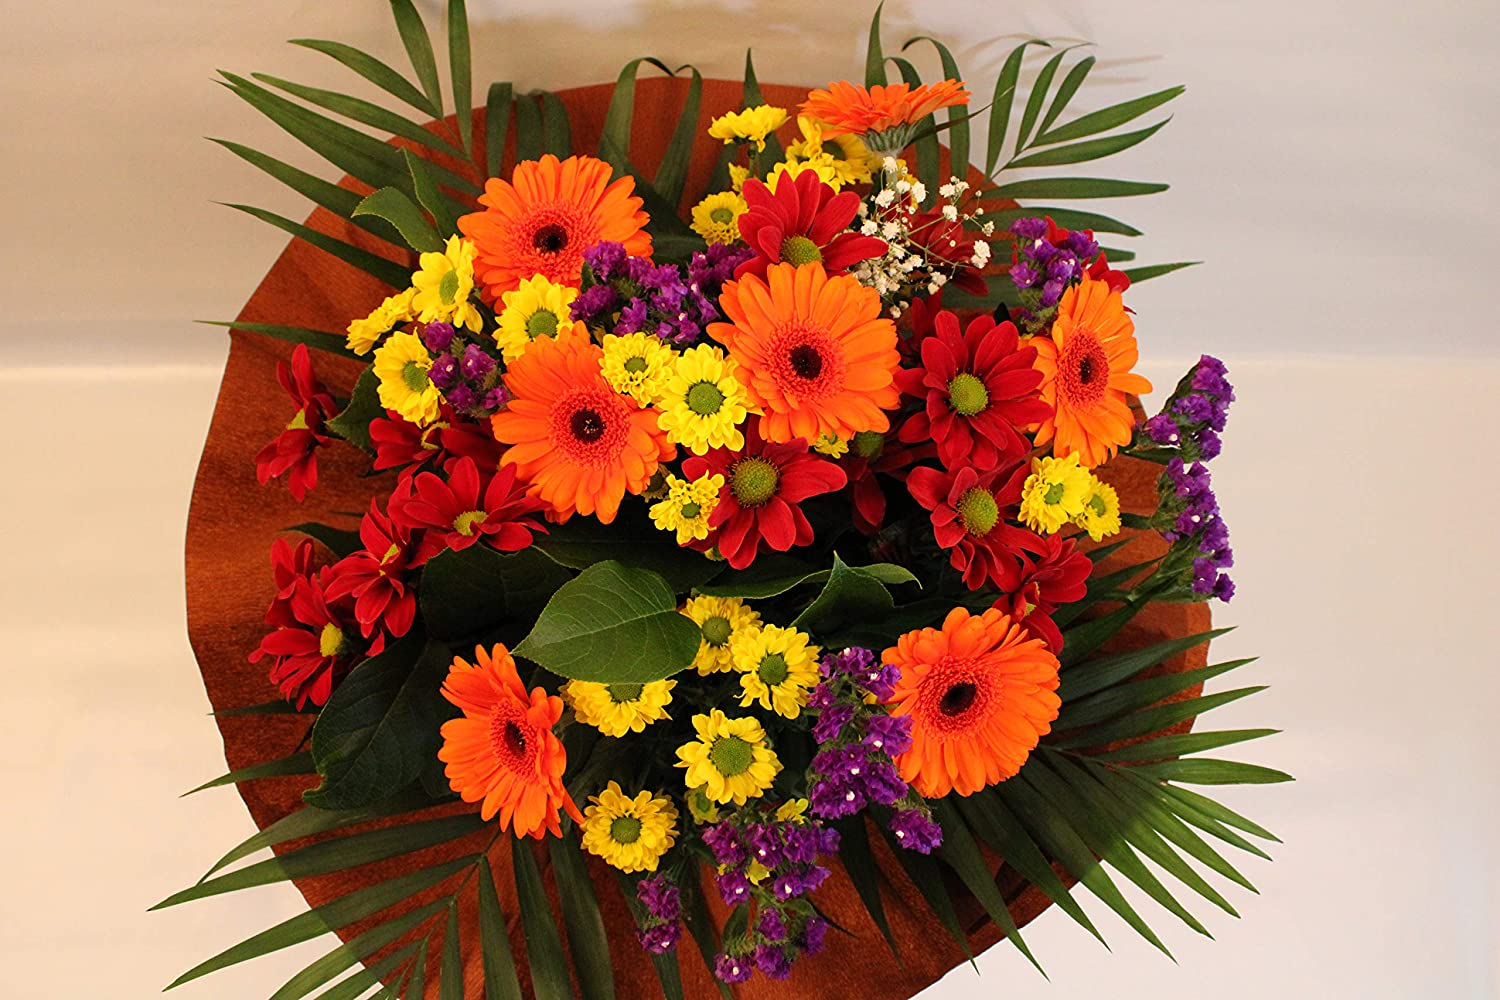 Autumn Burn Bouquet Prime Fresh Flowers Delivered Next Day Free Uk Delivery Special Offer Autumn Burn Bouquet Is A Lovely Gift For All Occasion Low Price Amazon Co Uk Garden Outdoors